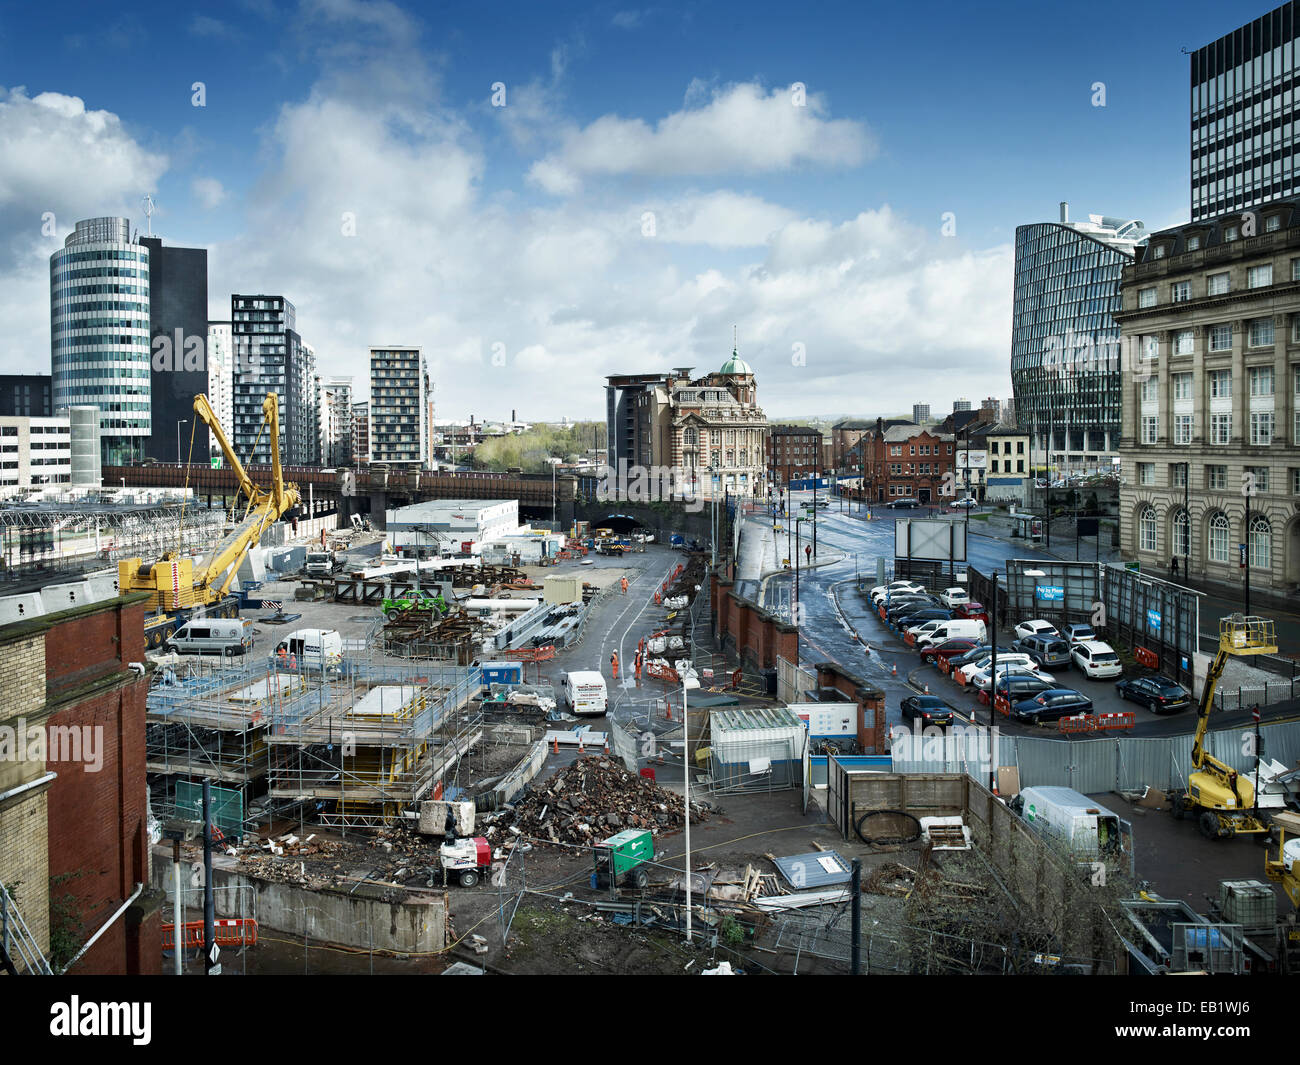 Manchester Victoria Station redevelopment view to the rear of the building site - Stock Image